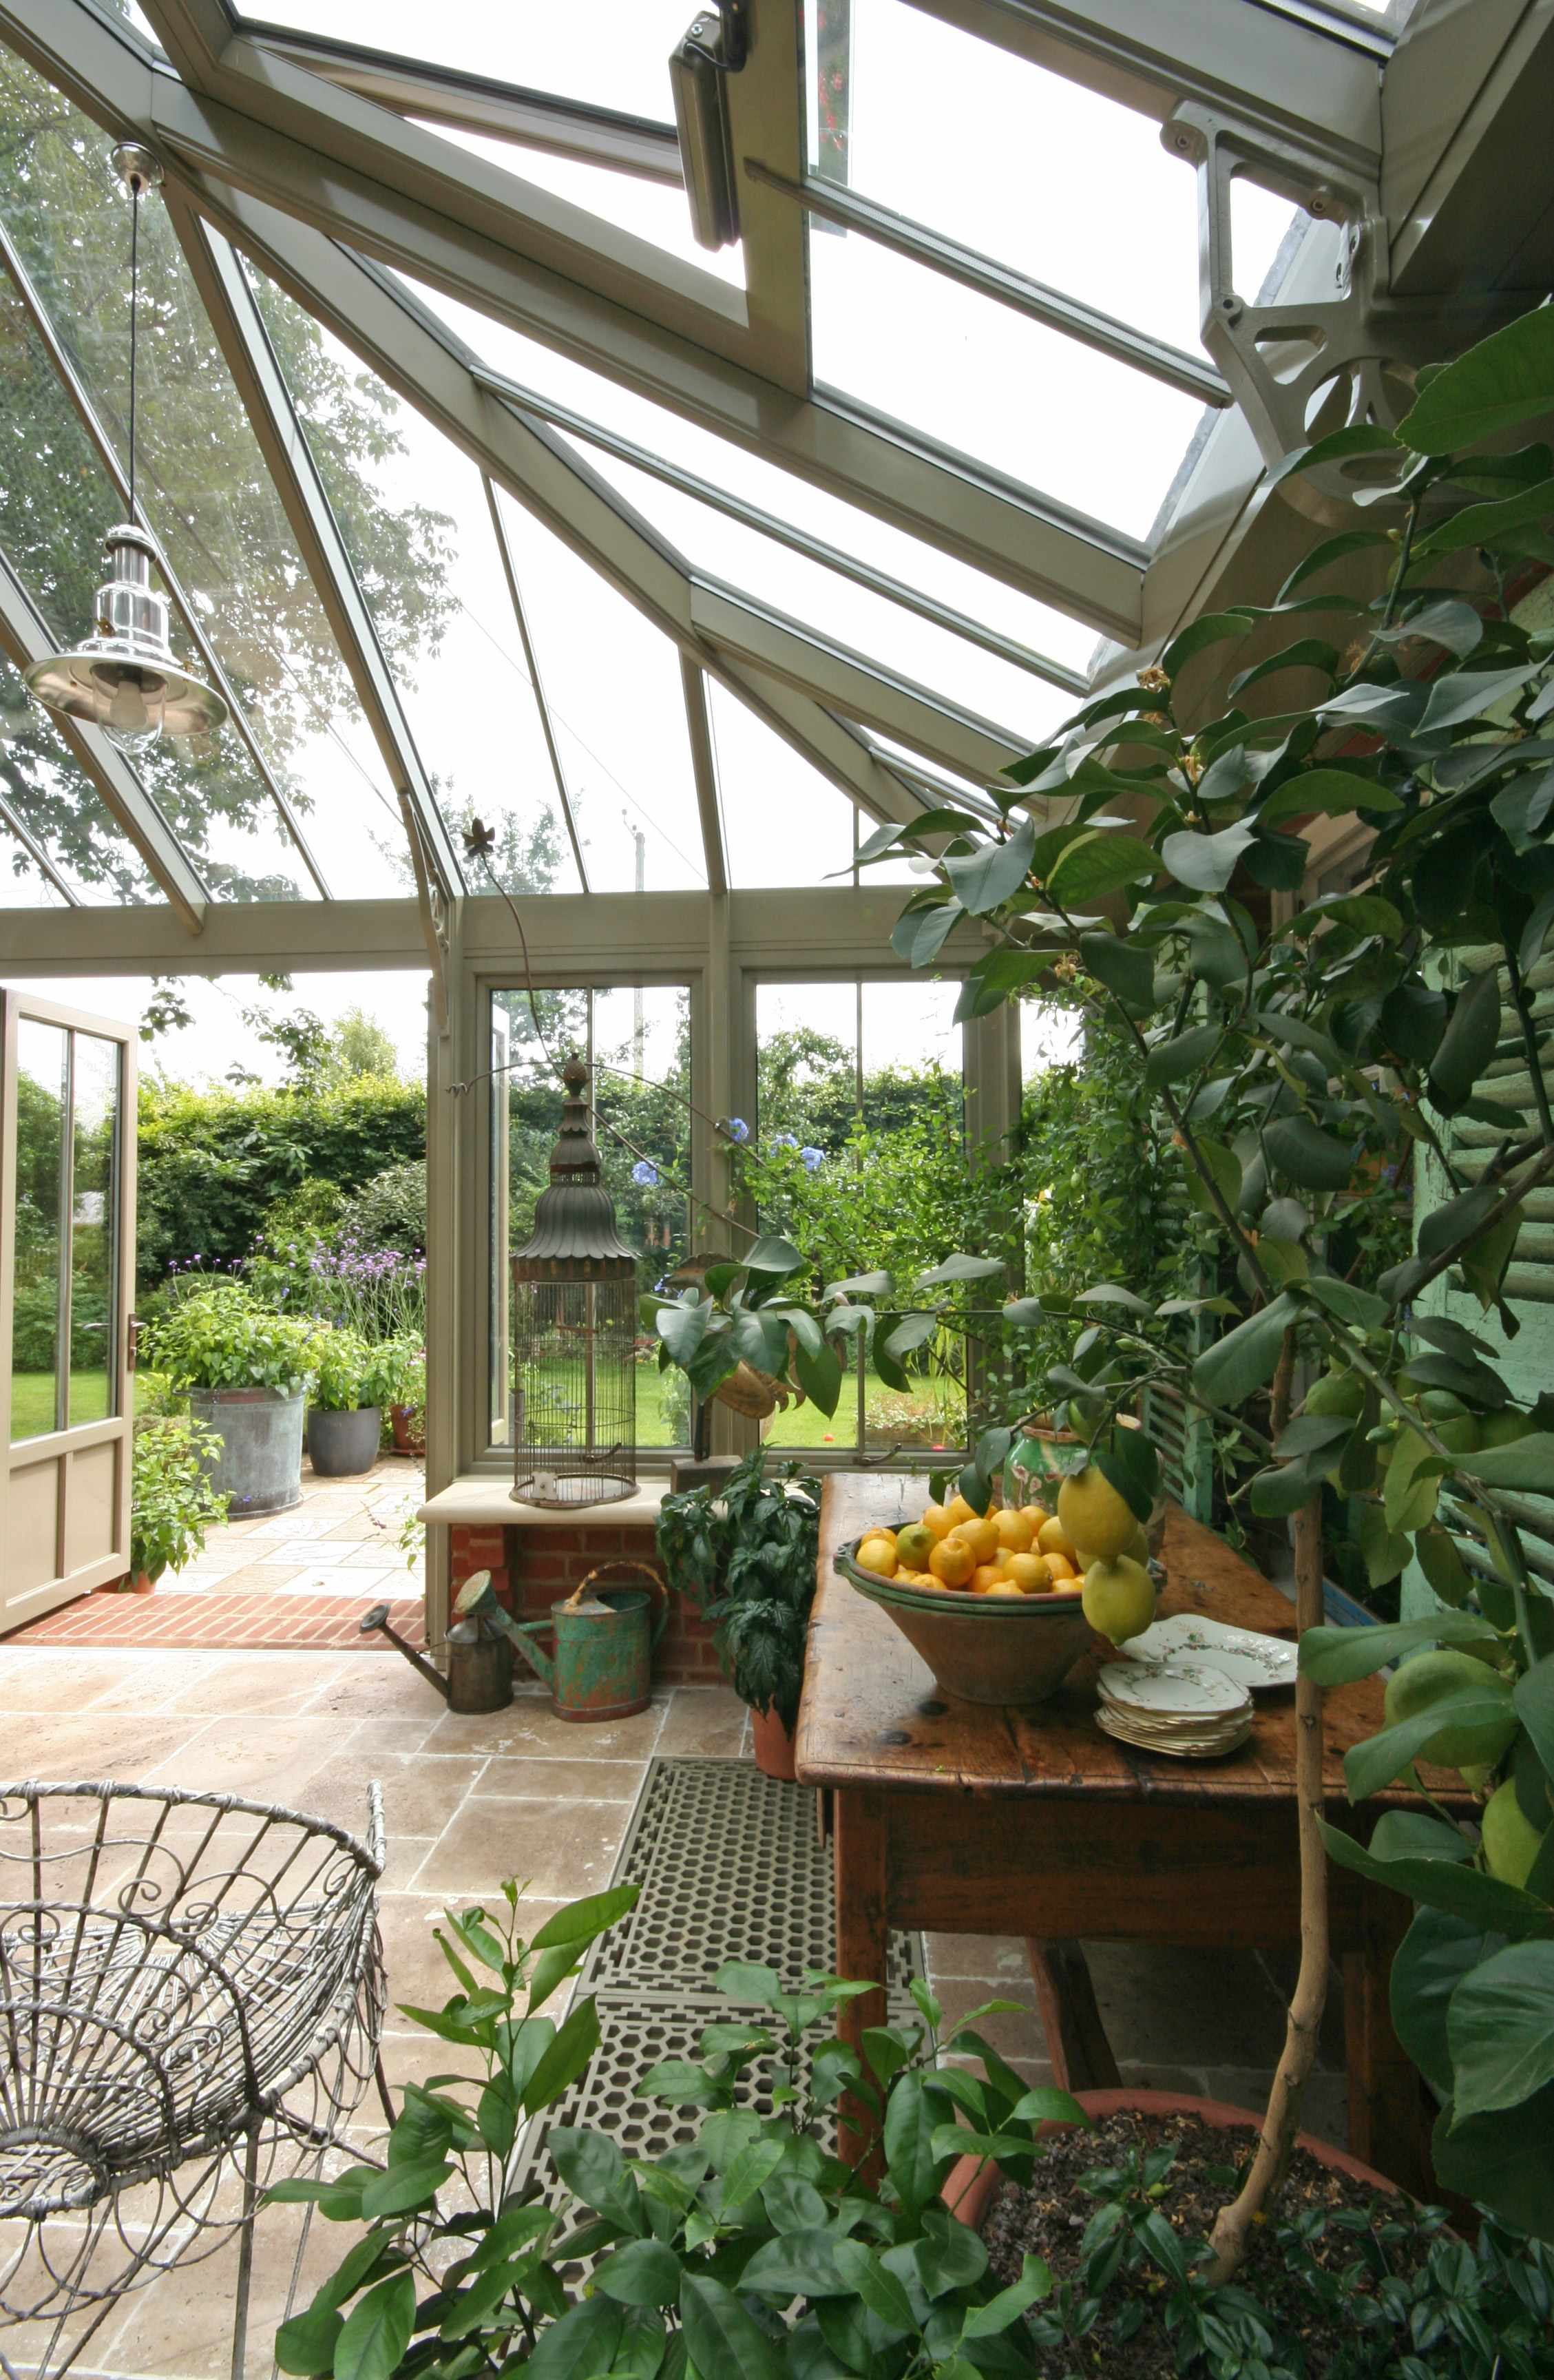 This powder-coated aluminium conservatory is furnished with rustic and weathered finds. Prices for similar garden rooms by Marston & Langinger start from around £50,000.